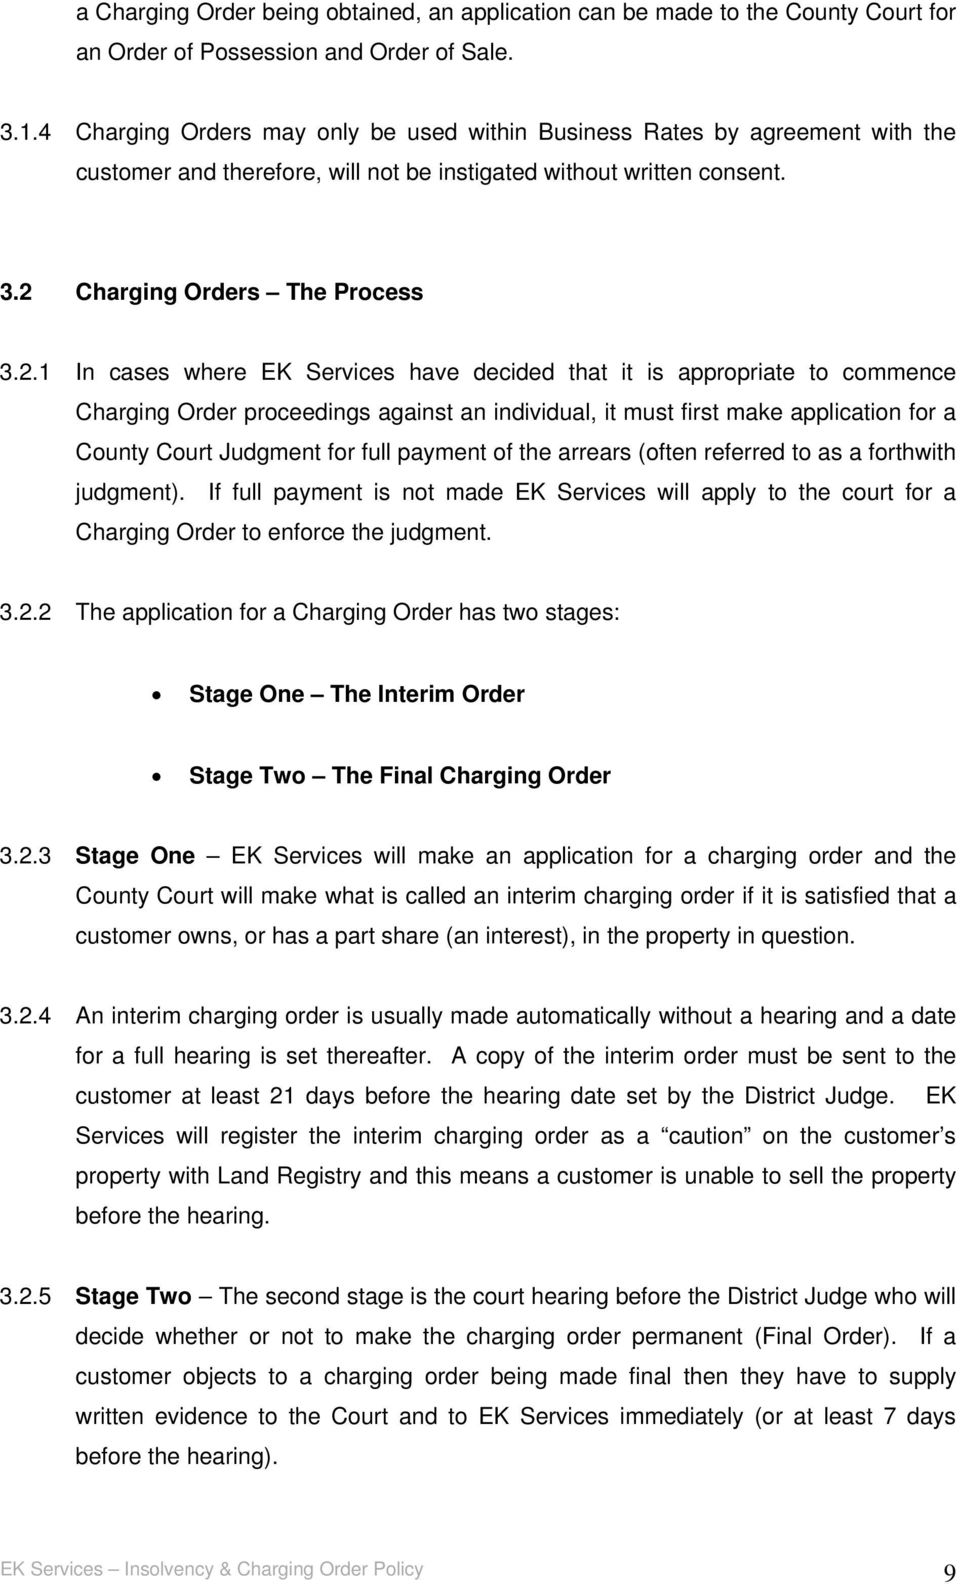 Charging Orders The Process 3.2.